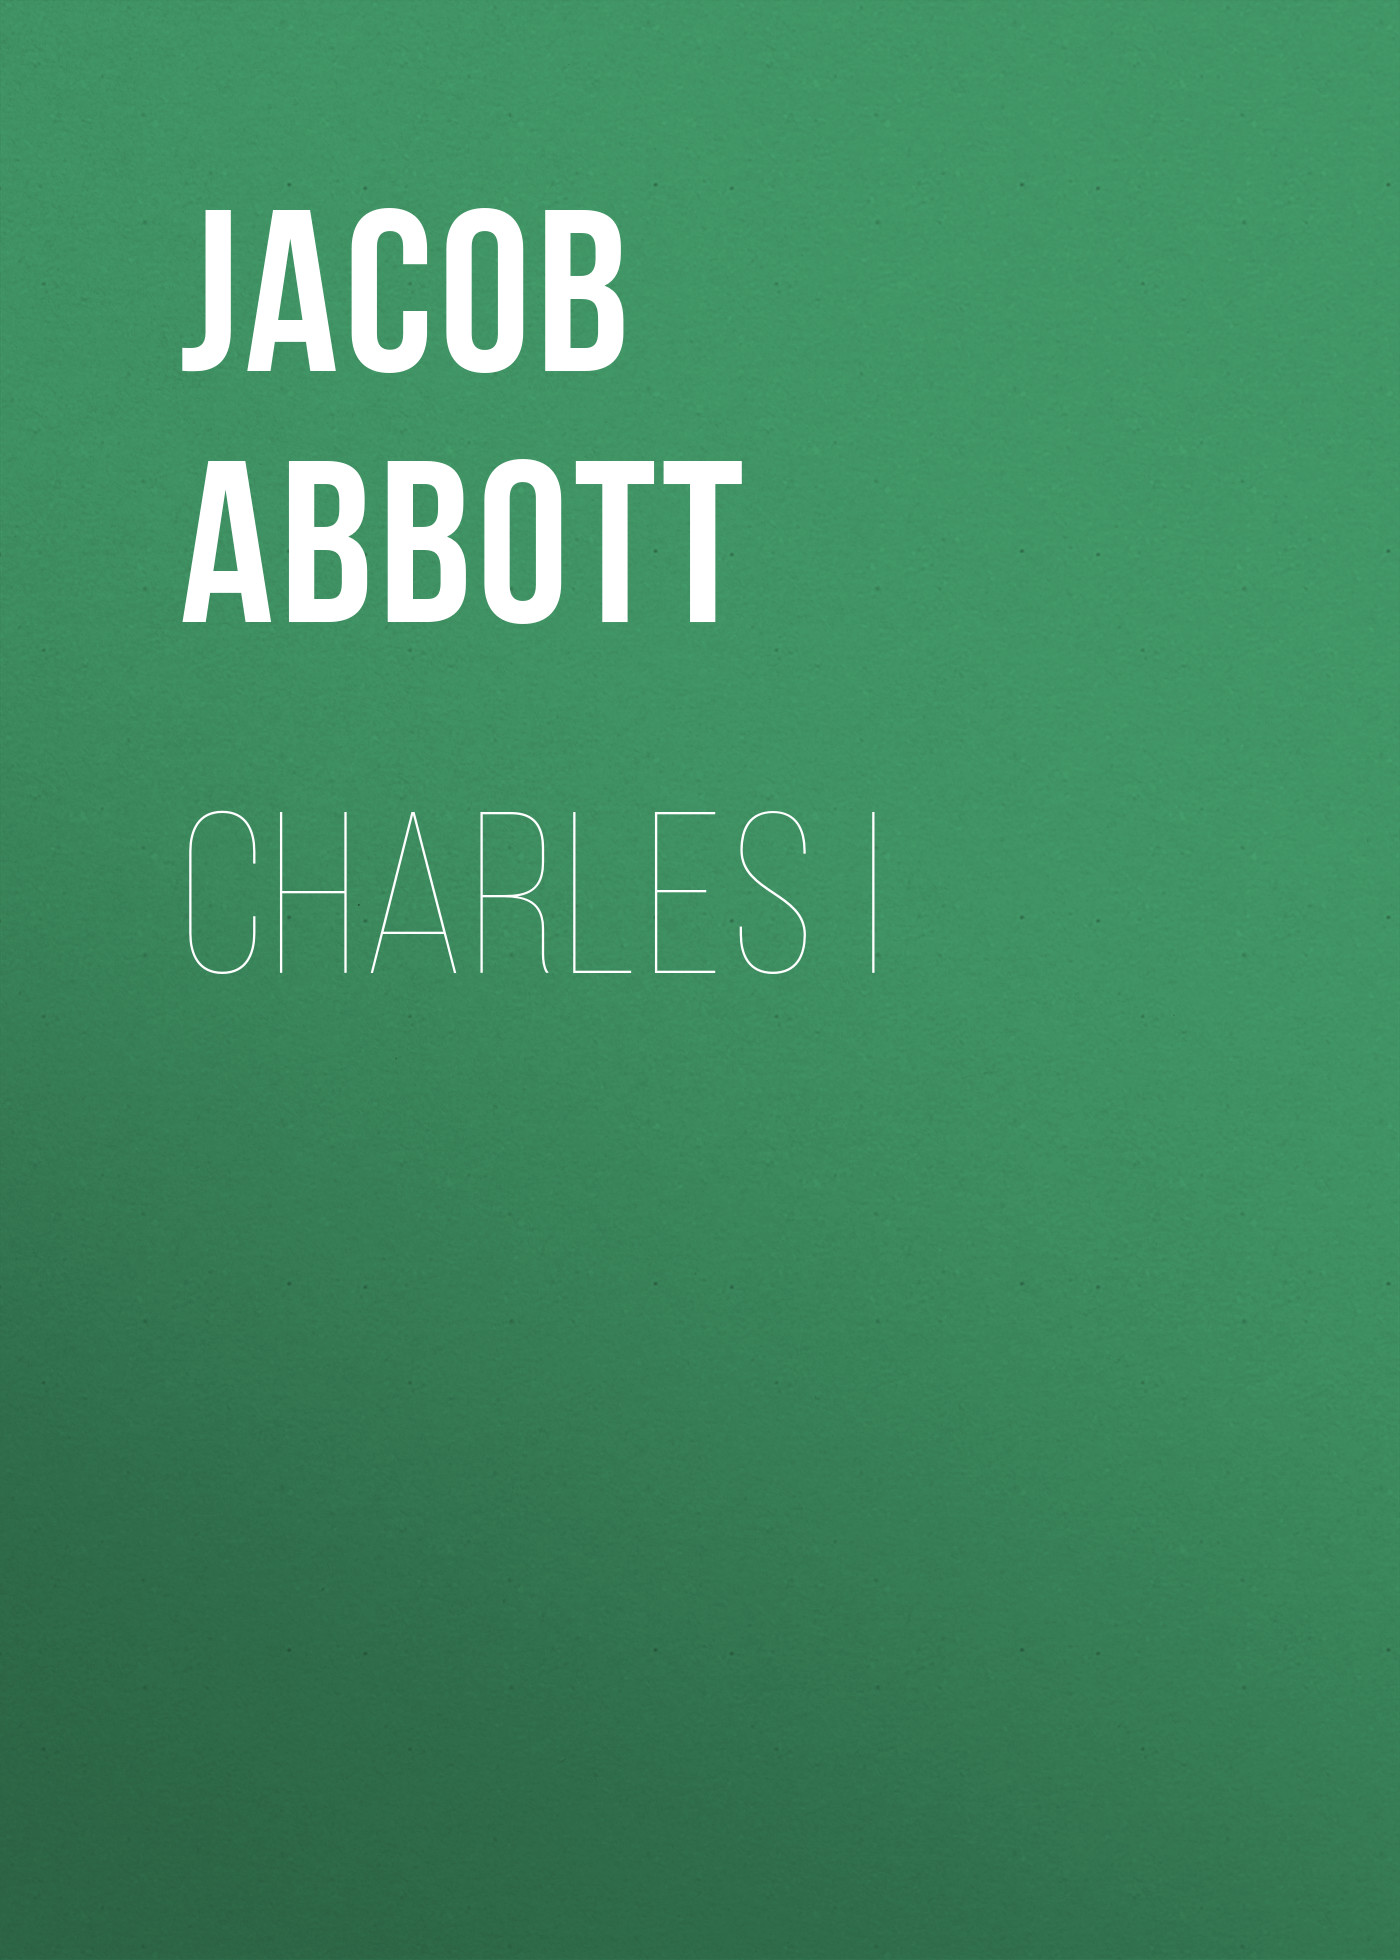 Abbott Jacob Charles I abbott jacob cyrus the great